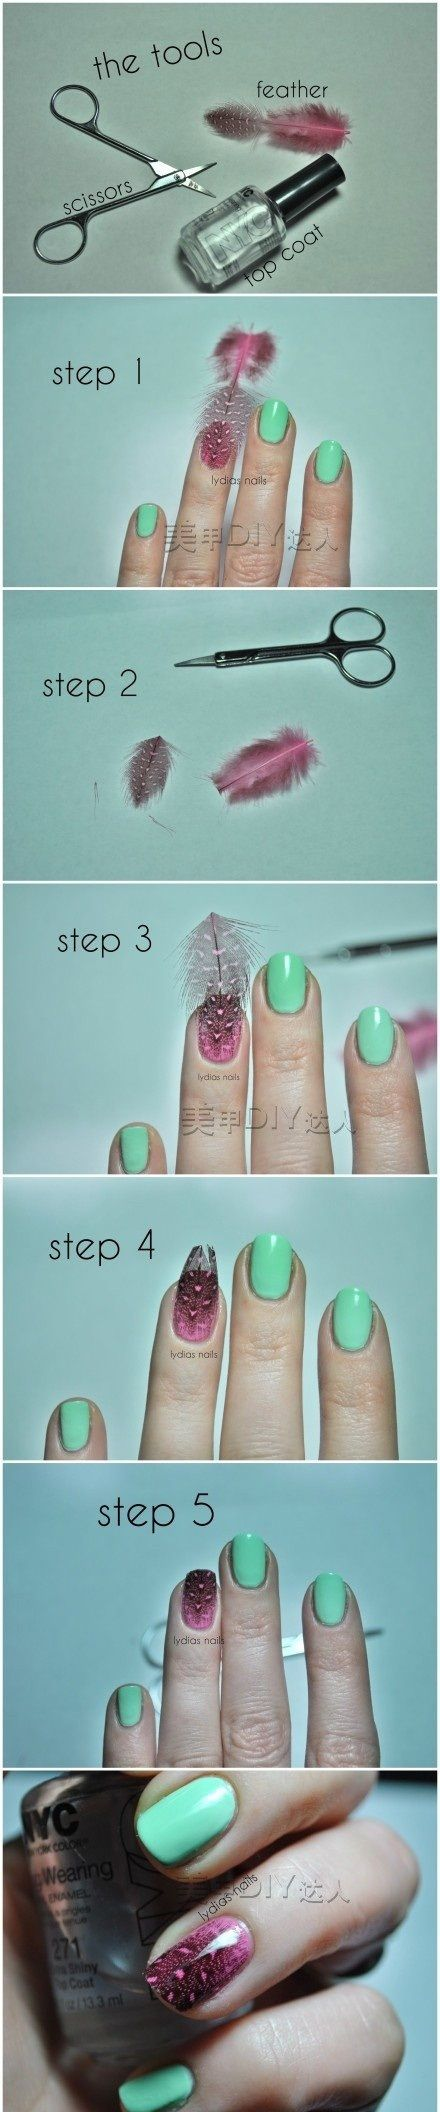 72 best nail art techniques images on Pinterest | Make up looks ...